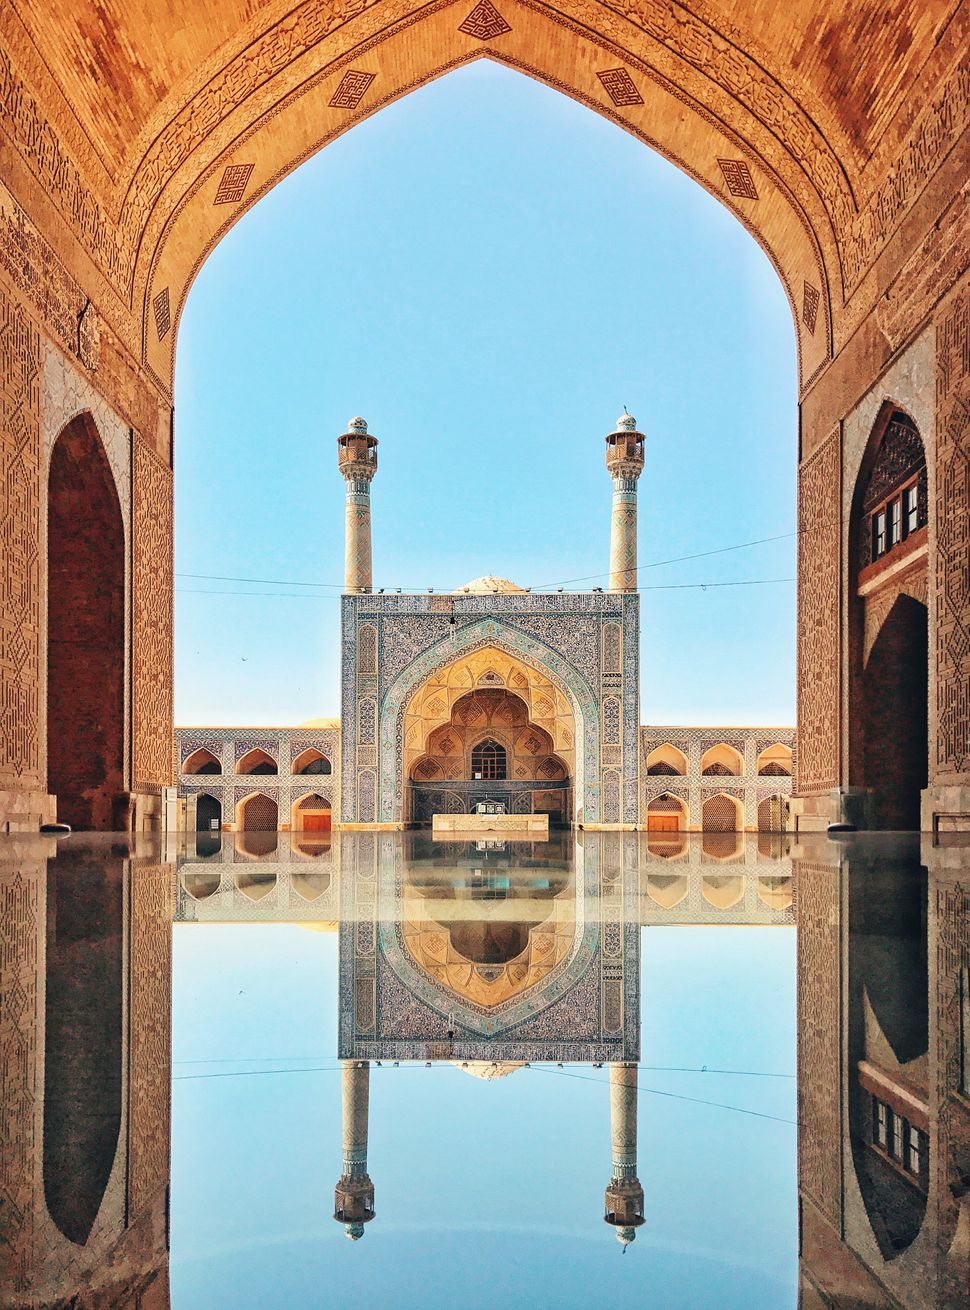 "Second Place<br>""Jameh Mosque of Isfahan""<br> Isfahan, Iran<br>Shot on iPhone 7"